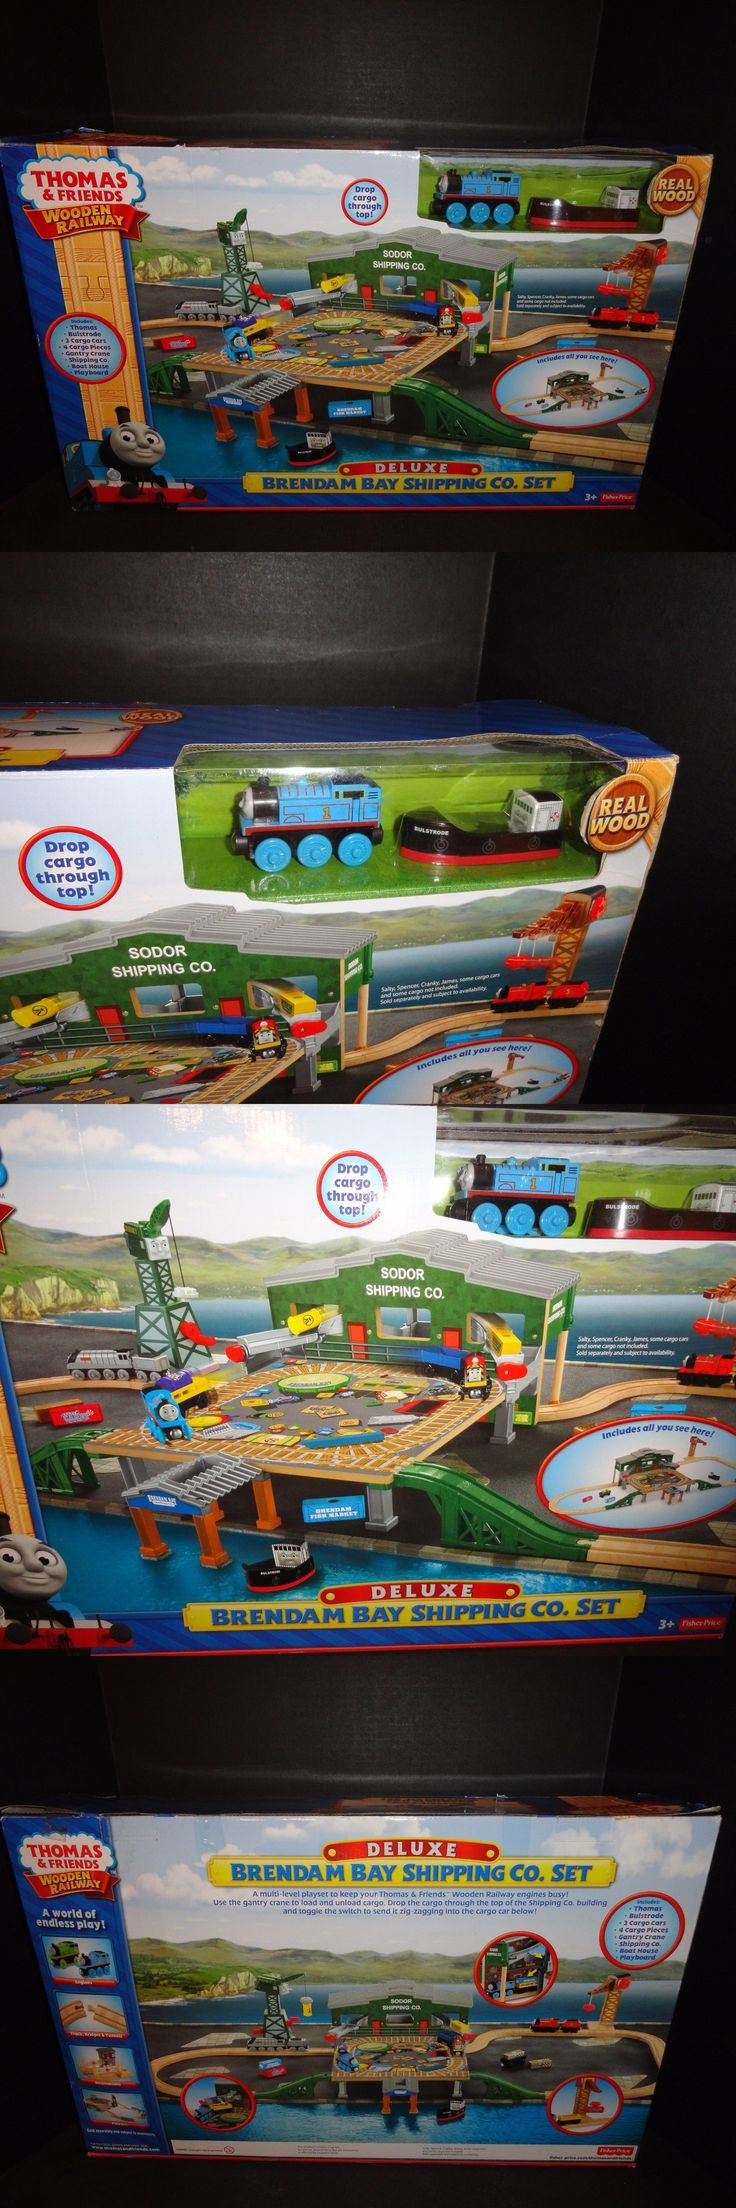 Other Thomas Games and Toys 22721: Thomas And Friends Wooden Railway Deluxe Brendam Bay Shipping Company Set New -> BUY IT NOW ONLY: $139.95 on eBay!